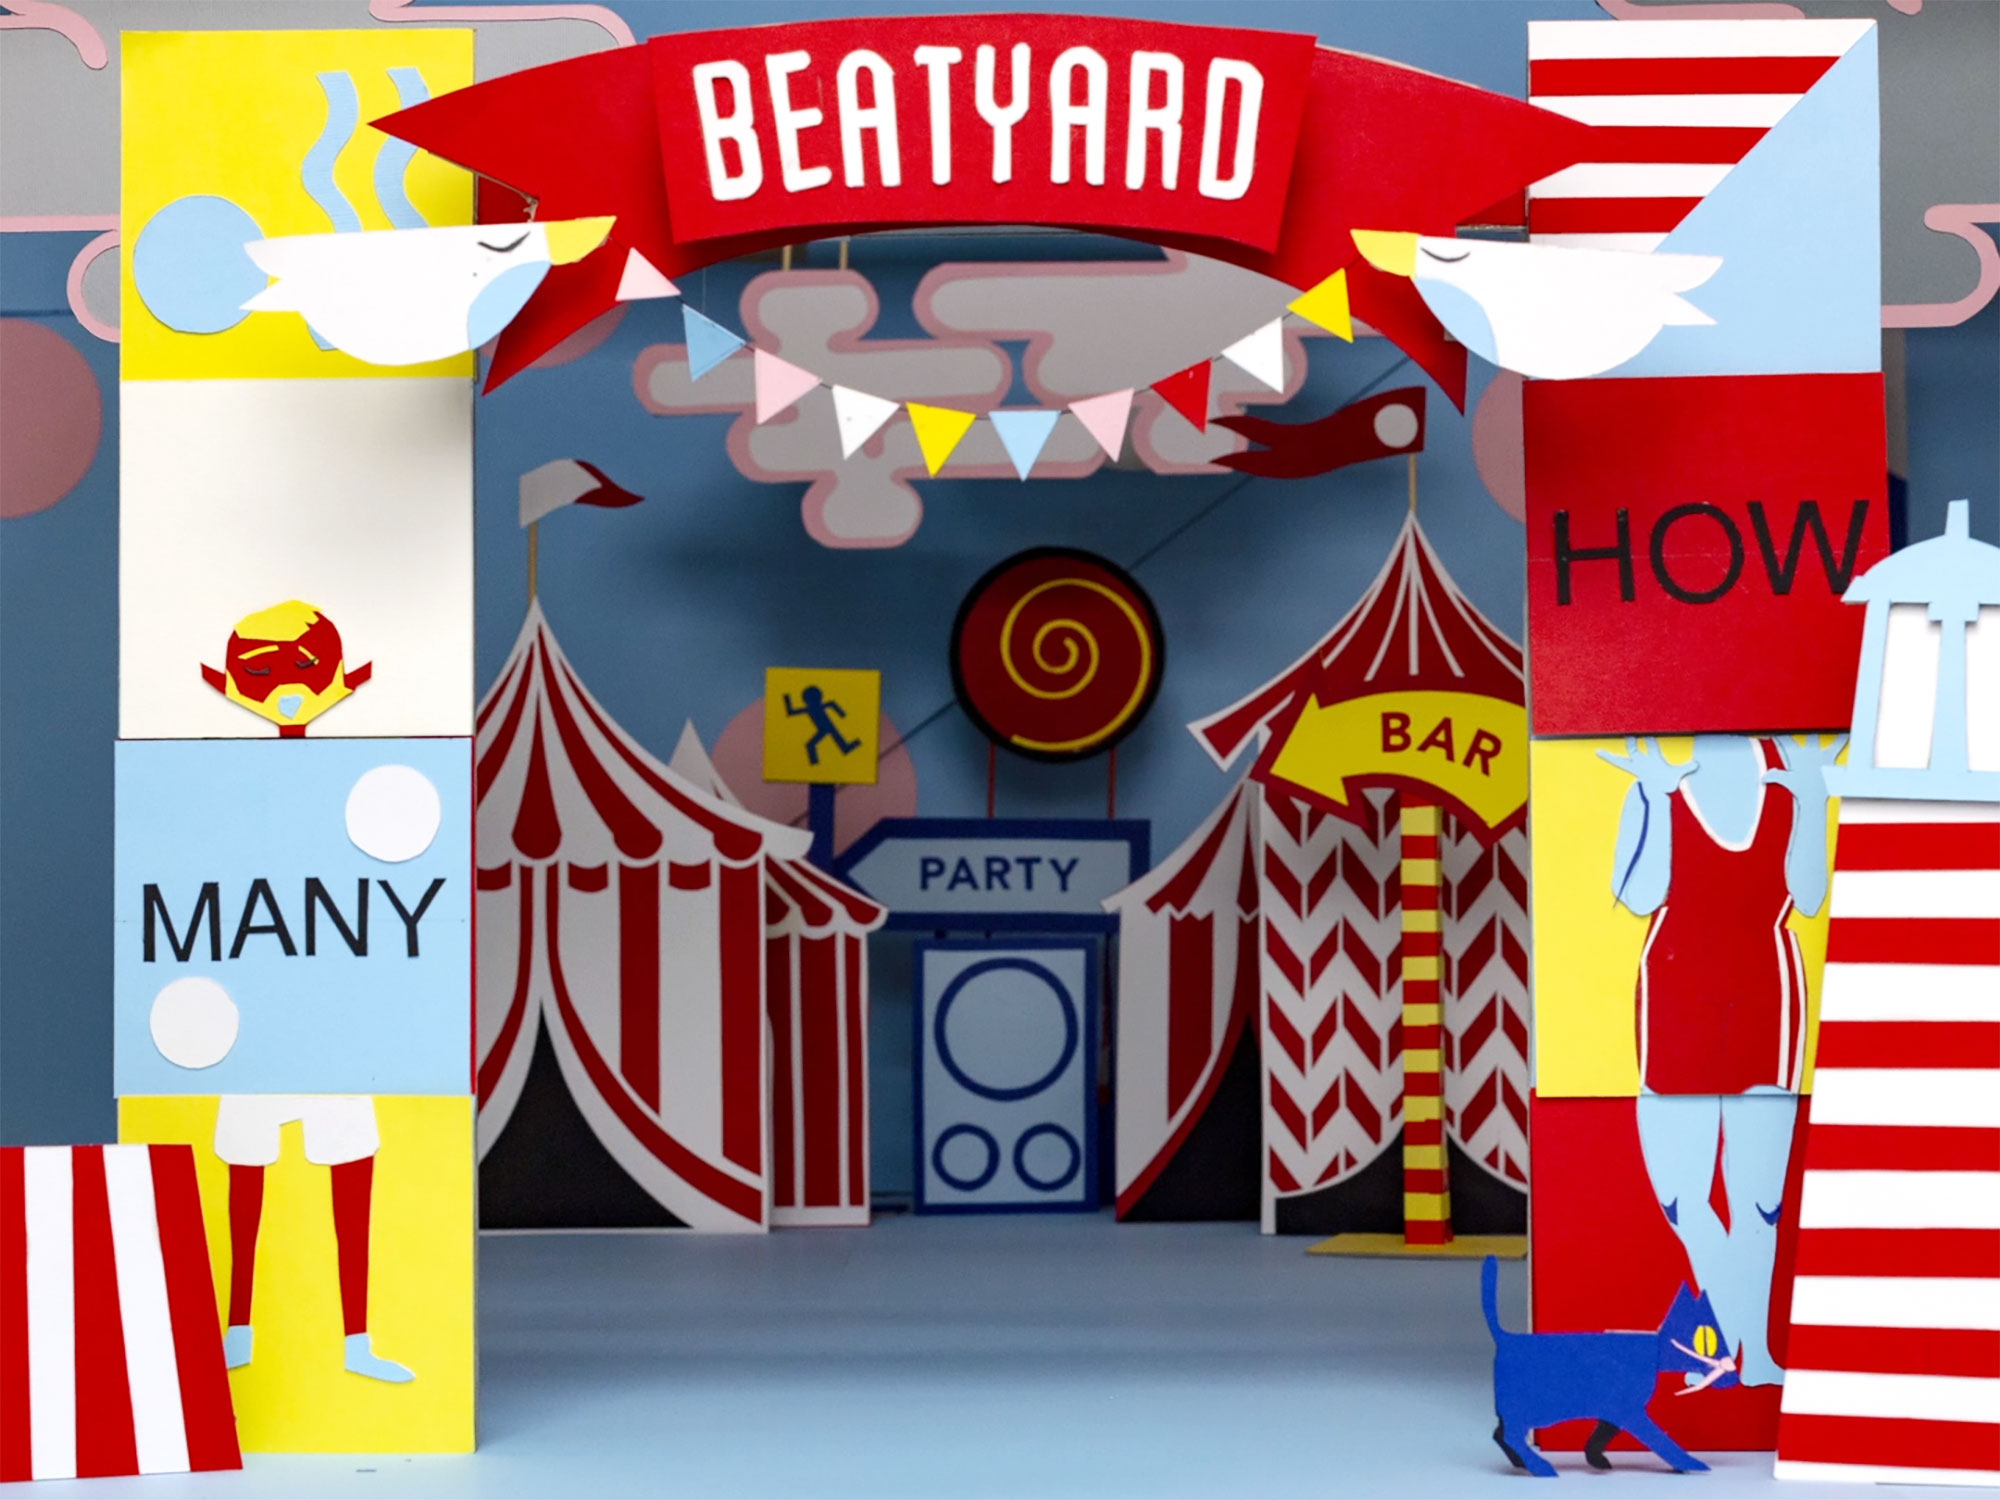 Cover image: Beatyard 018